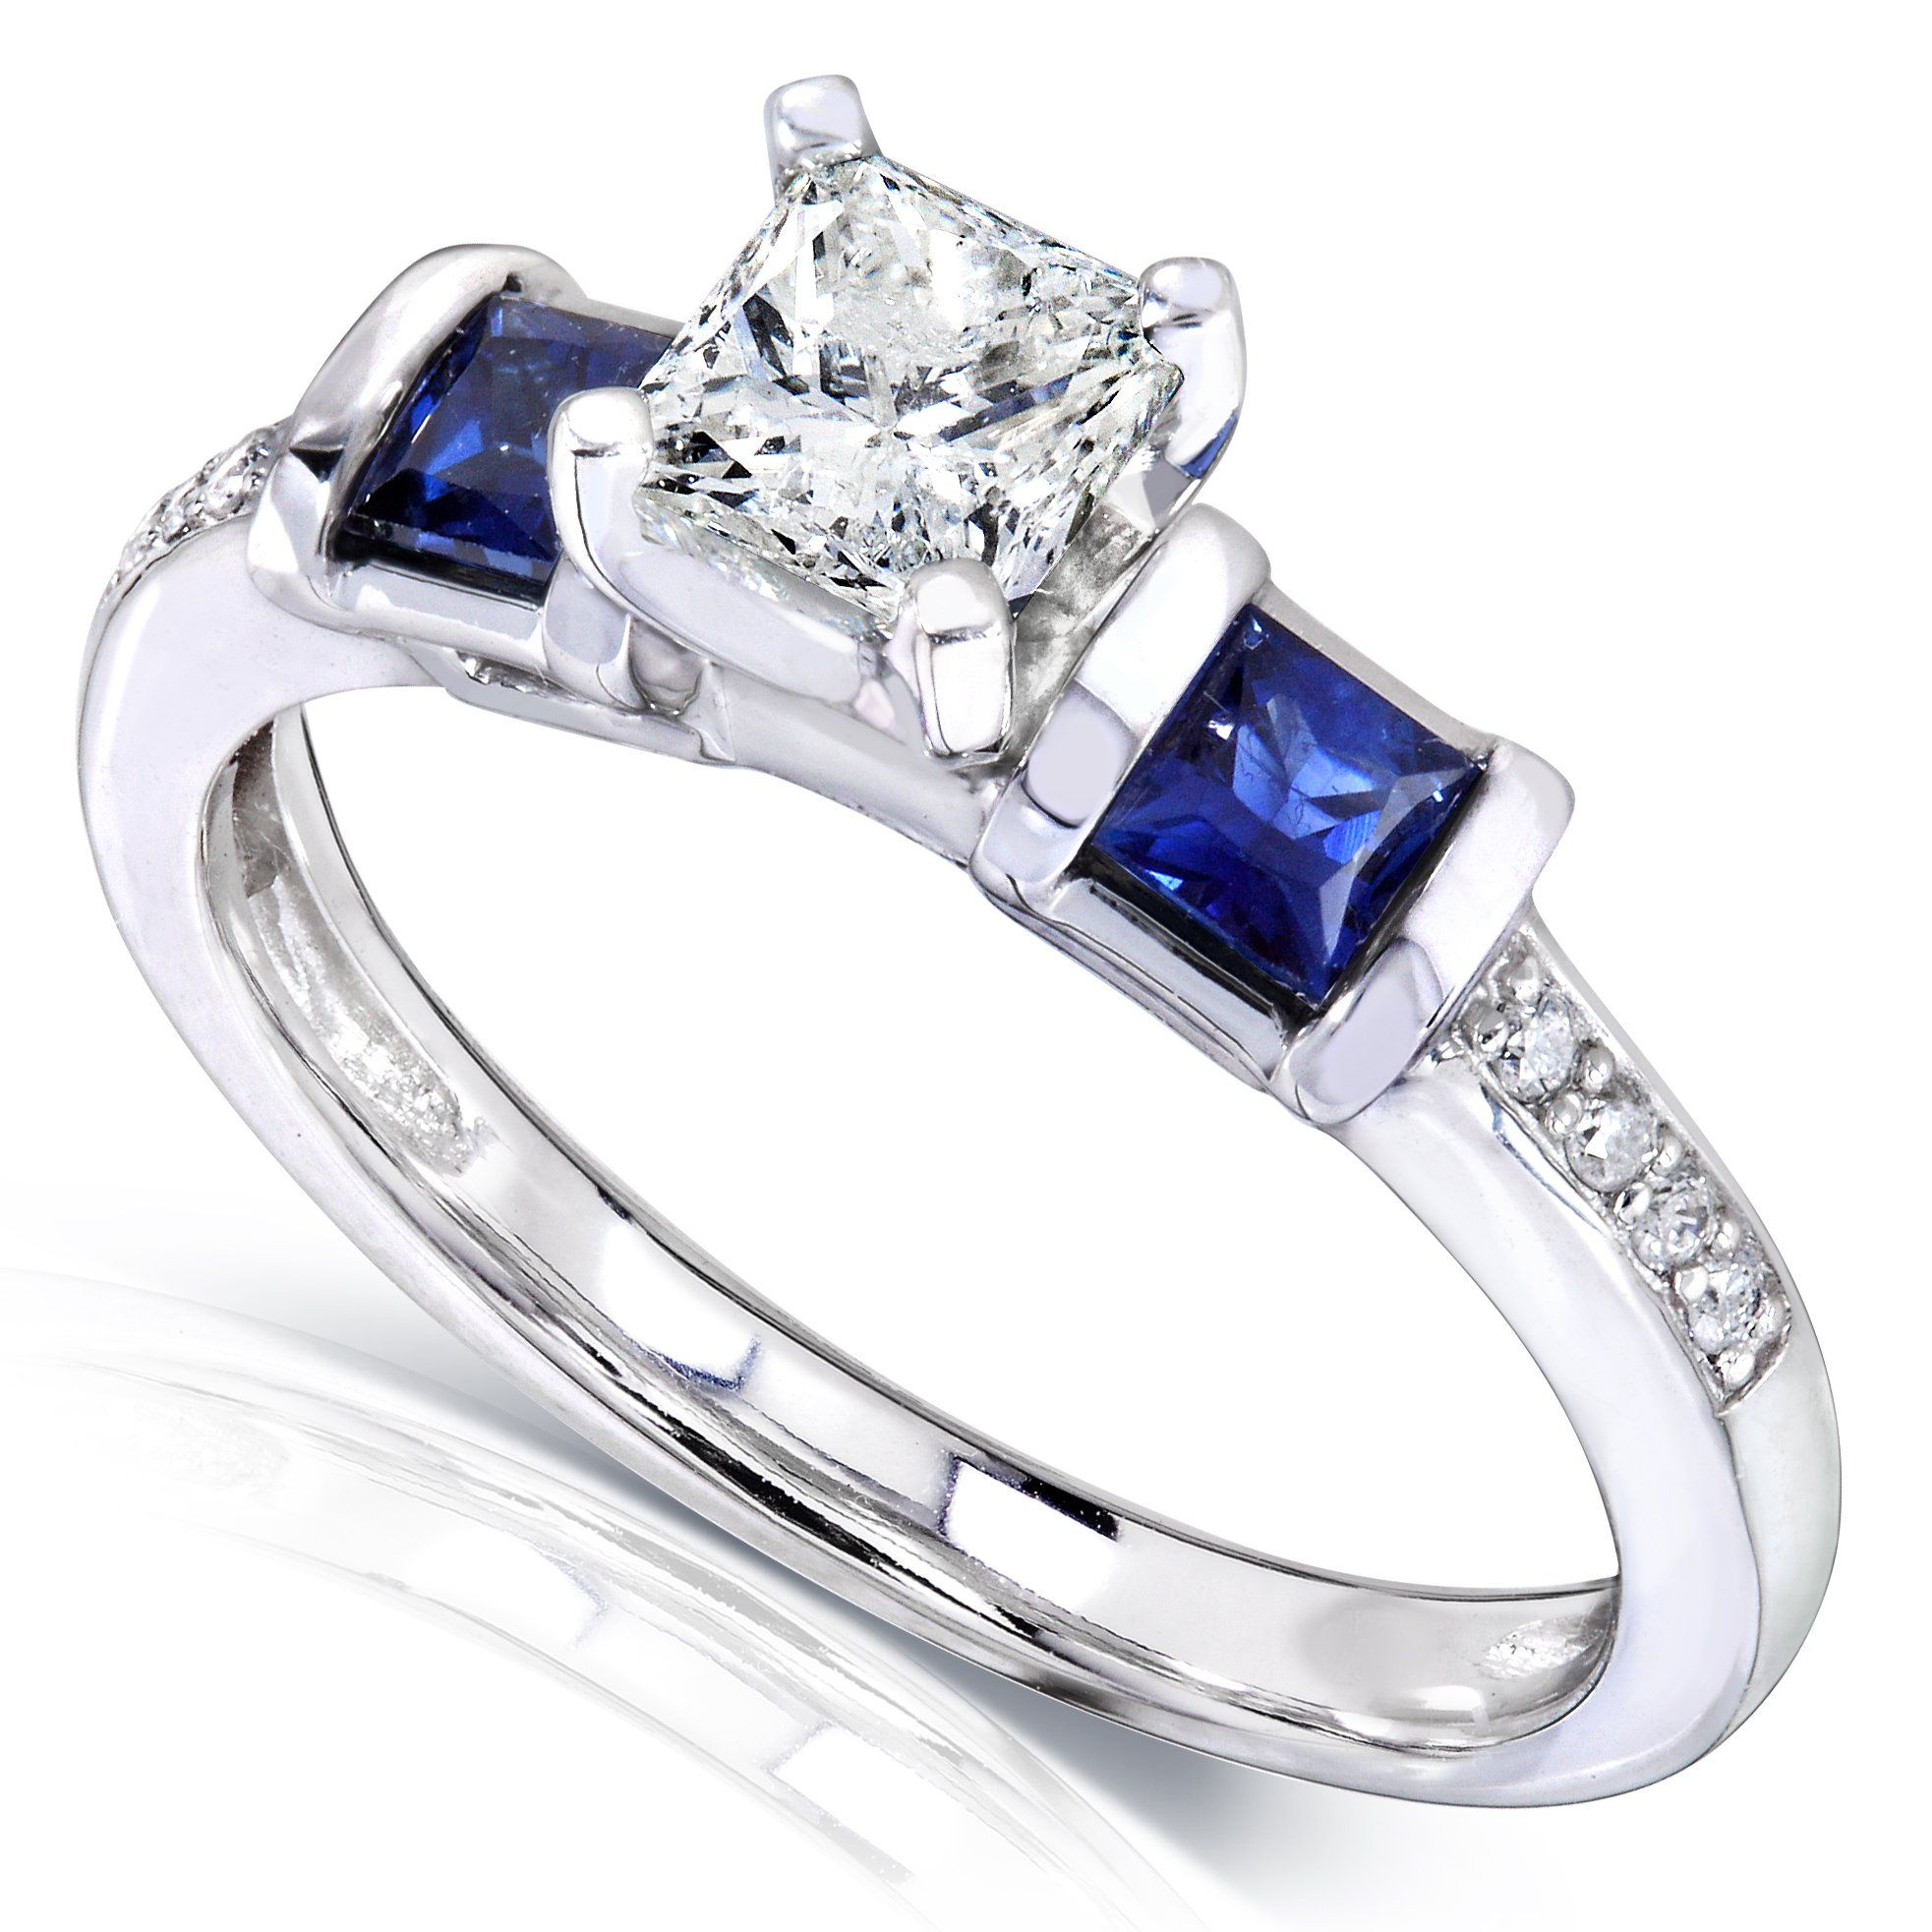 7/8ct TW Three-Stone Diamond and Sapphire Engagement Ring in 14k White Gold - Size 4.5